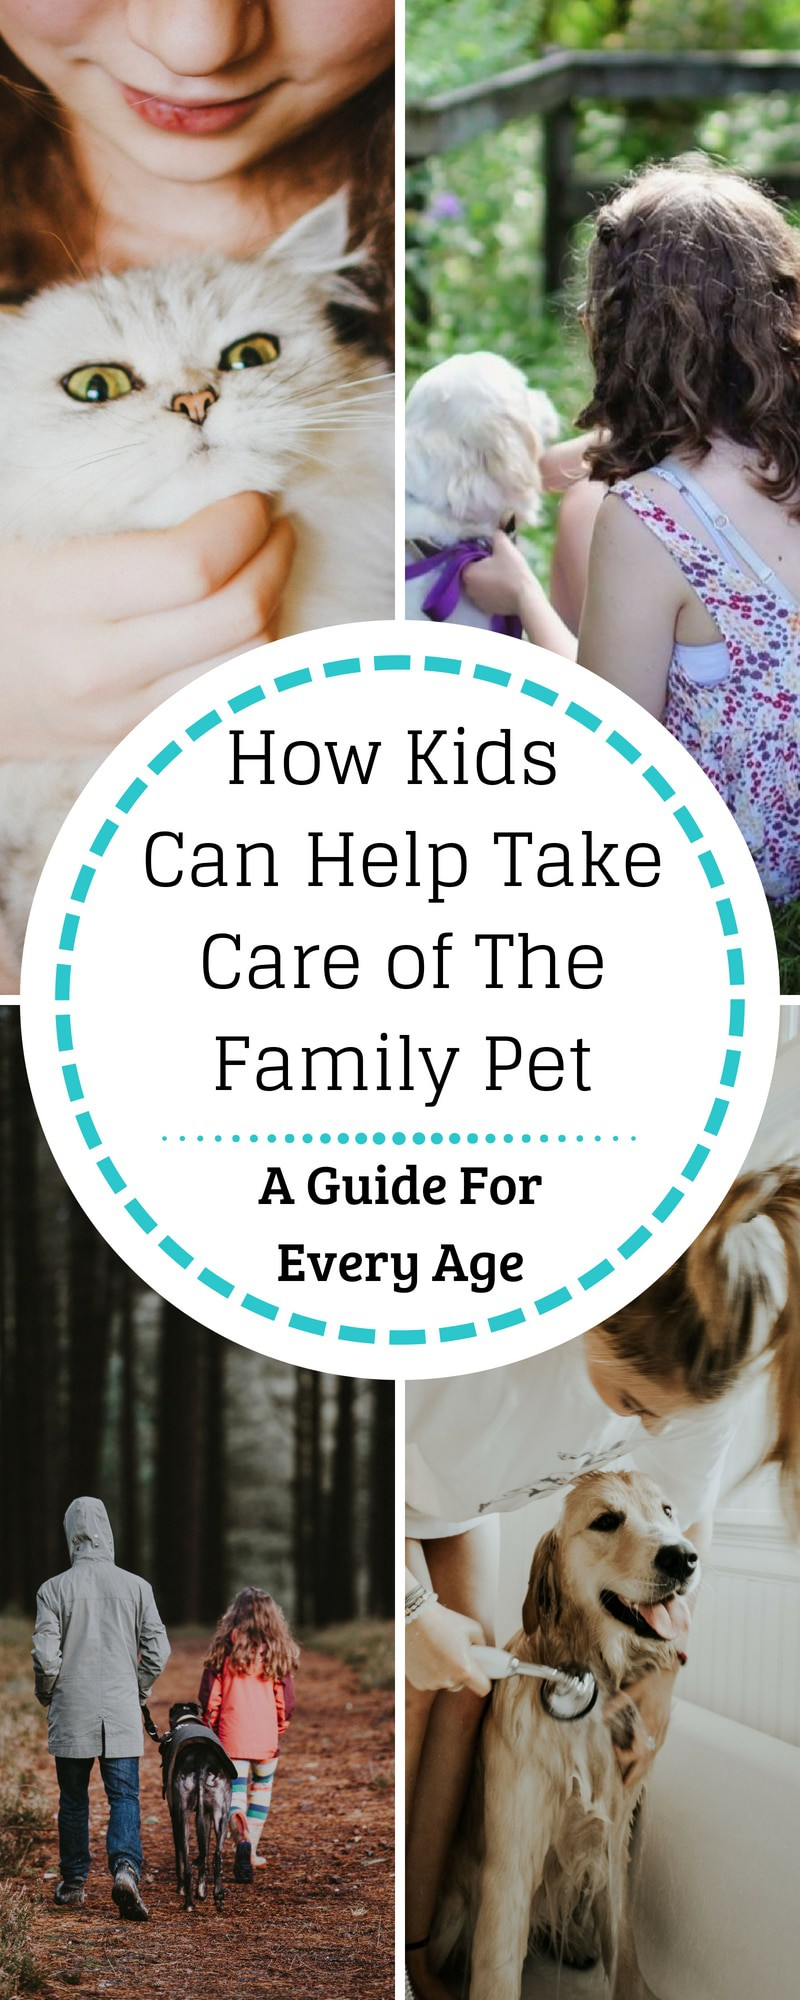 Kids and Pets--How Kids Can Help Take Care of the Family Pet